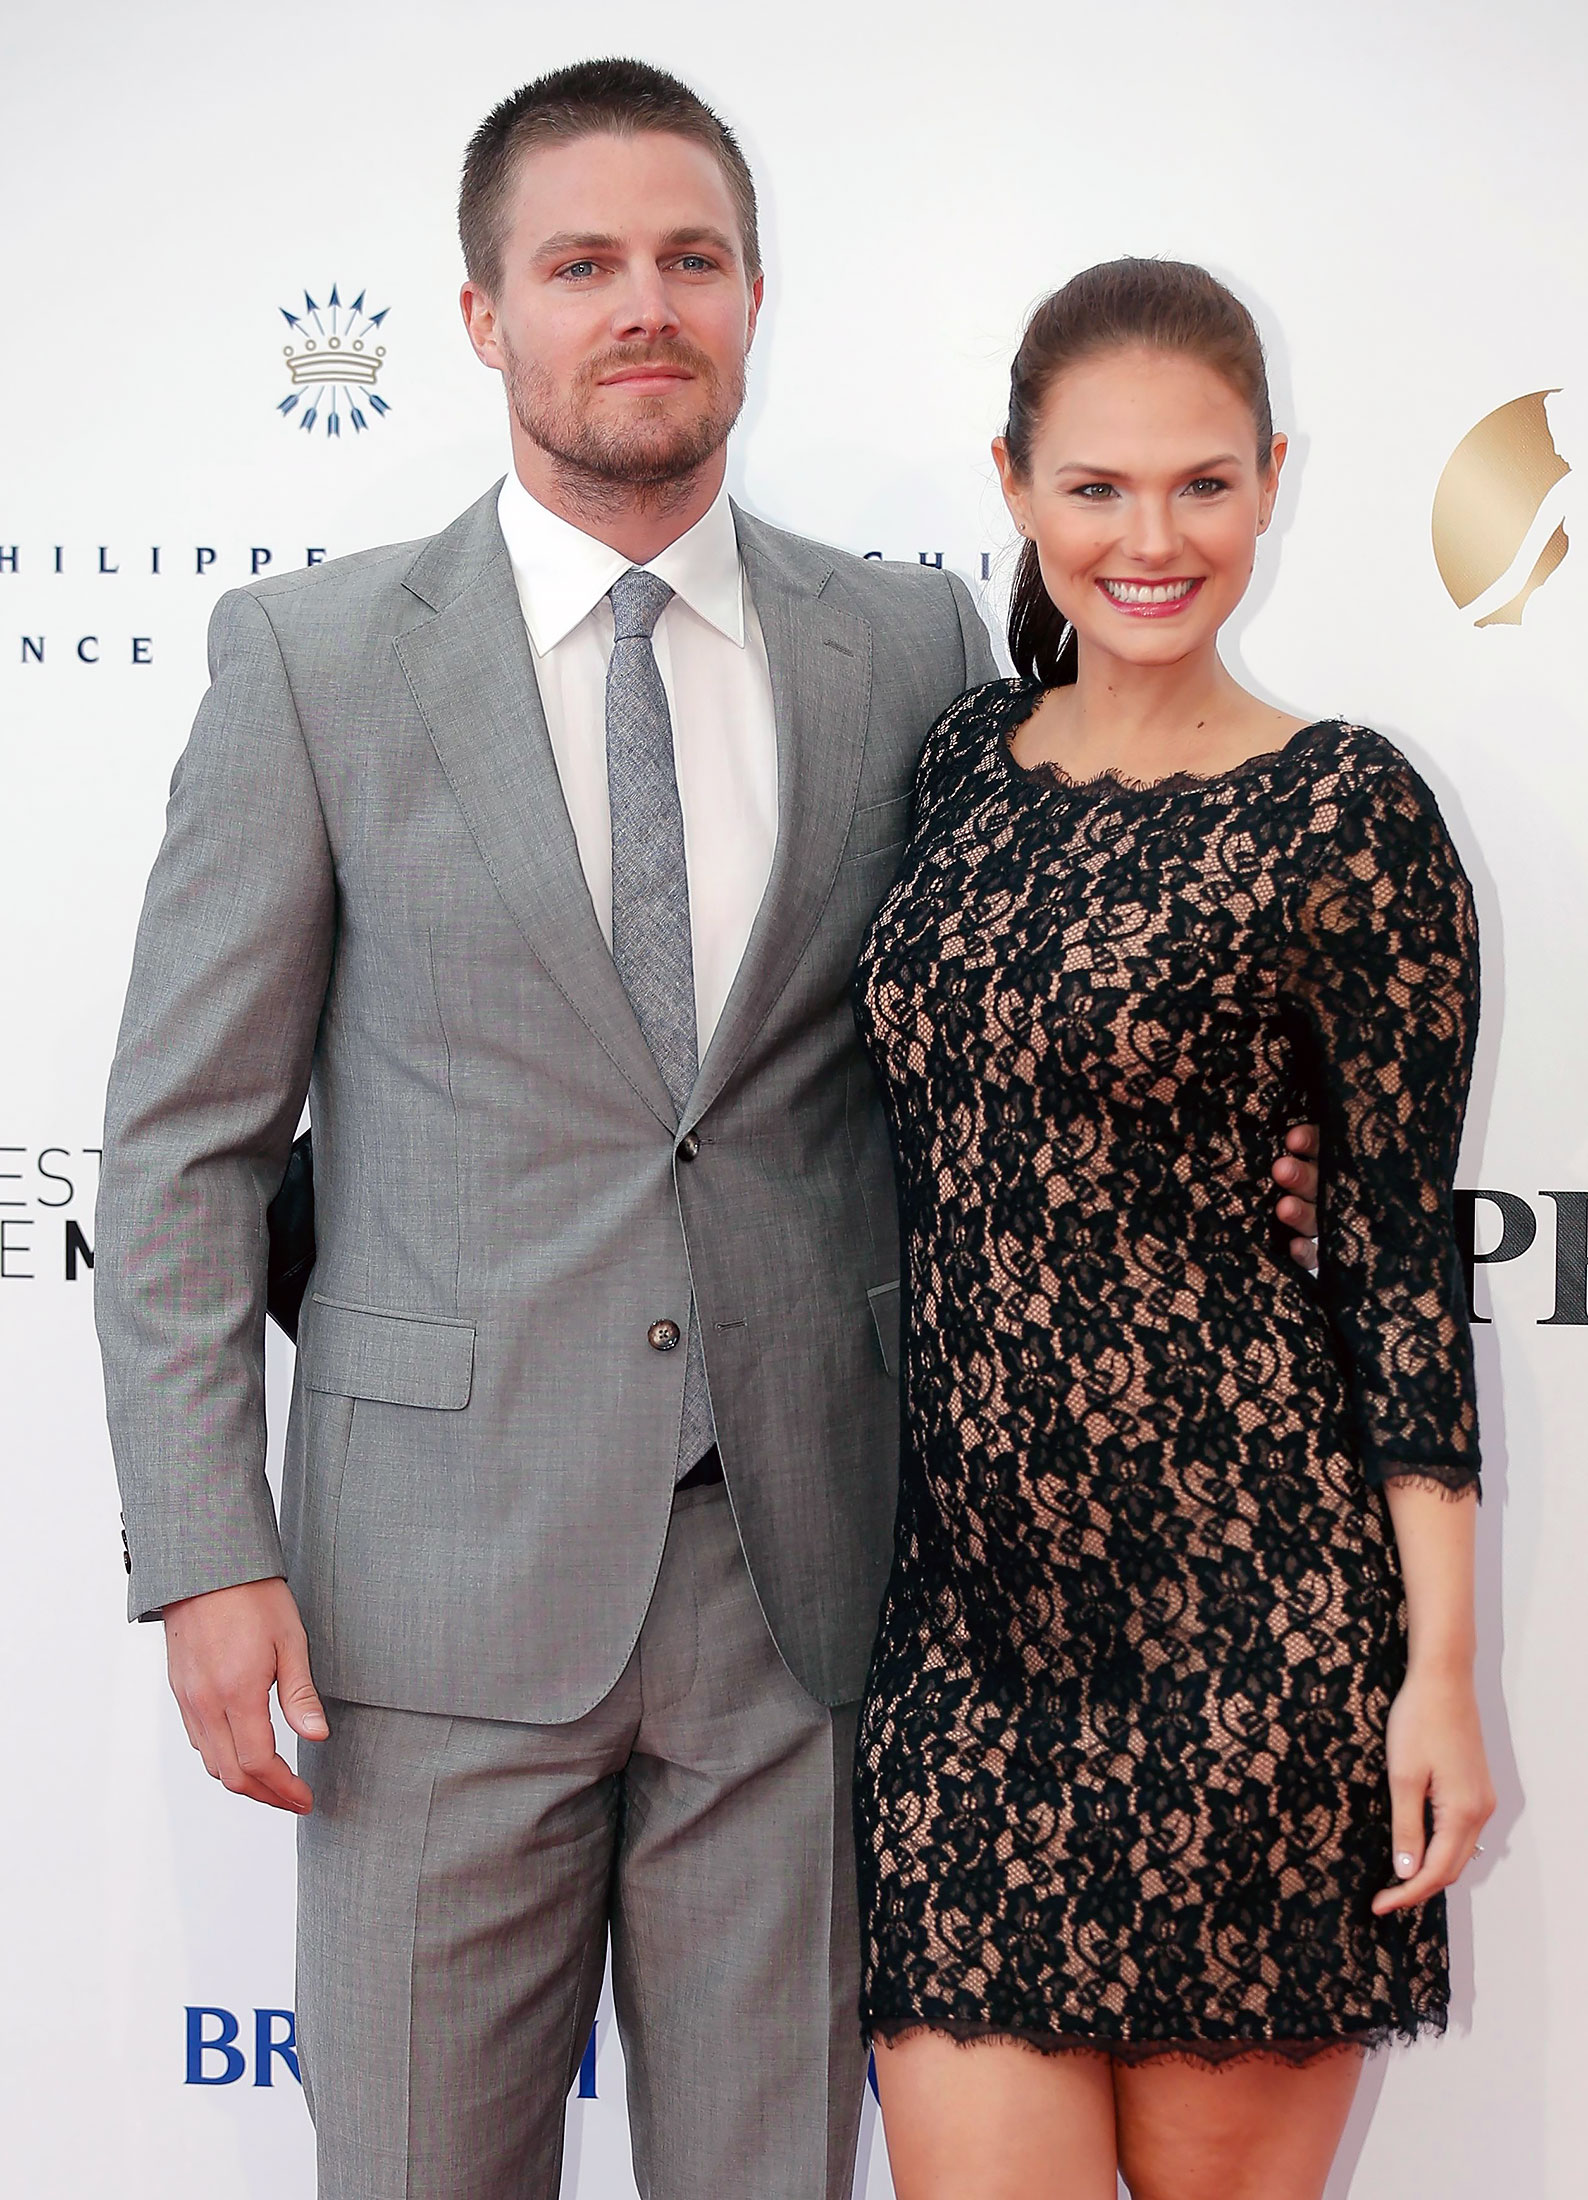 Cassandra Jean Posts About 'Self-Care' After Stephen Amell Plane Incident